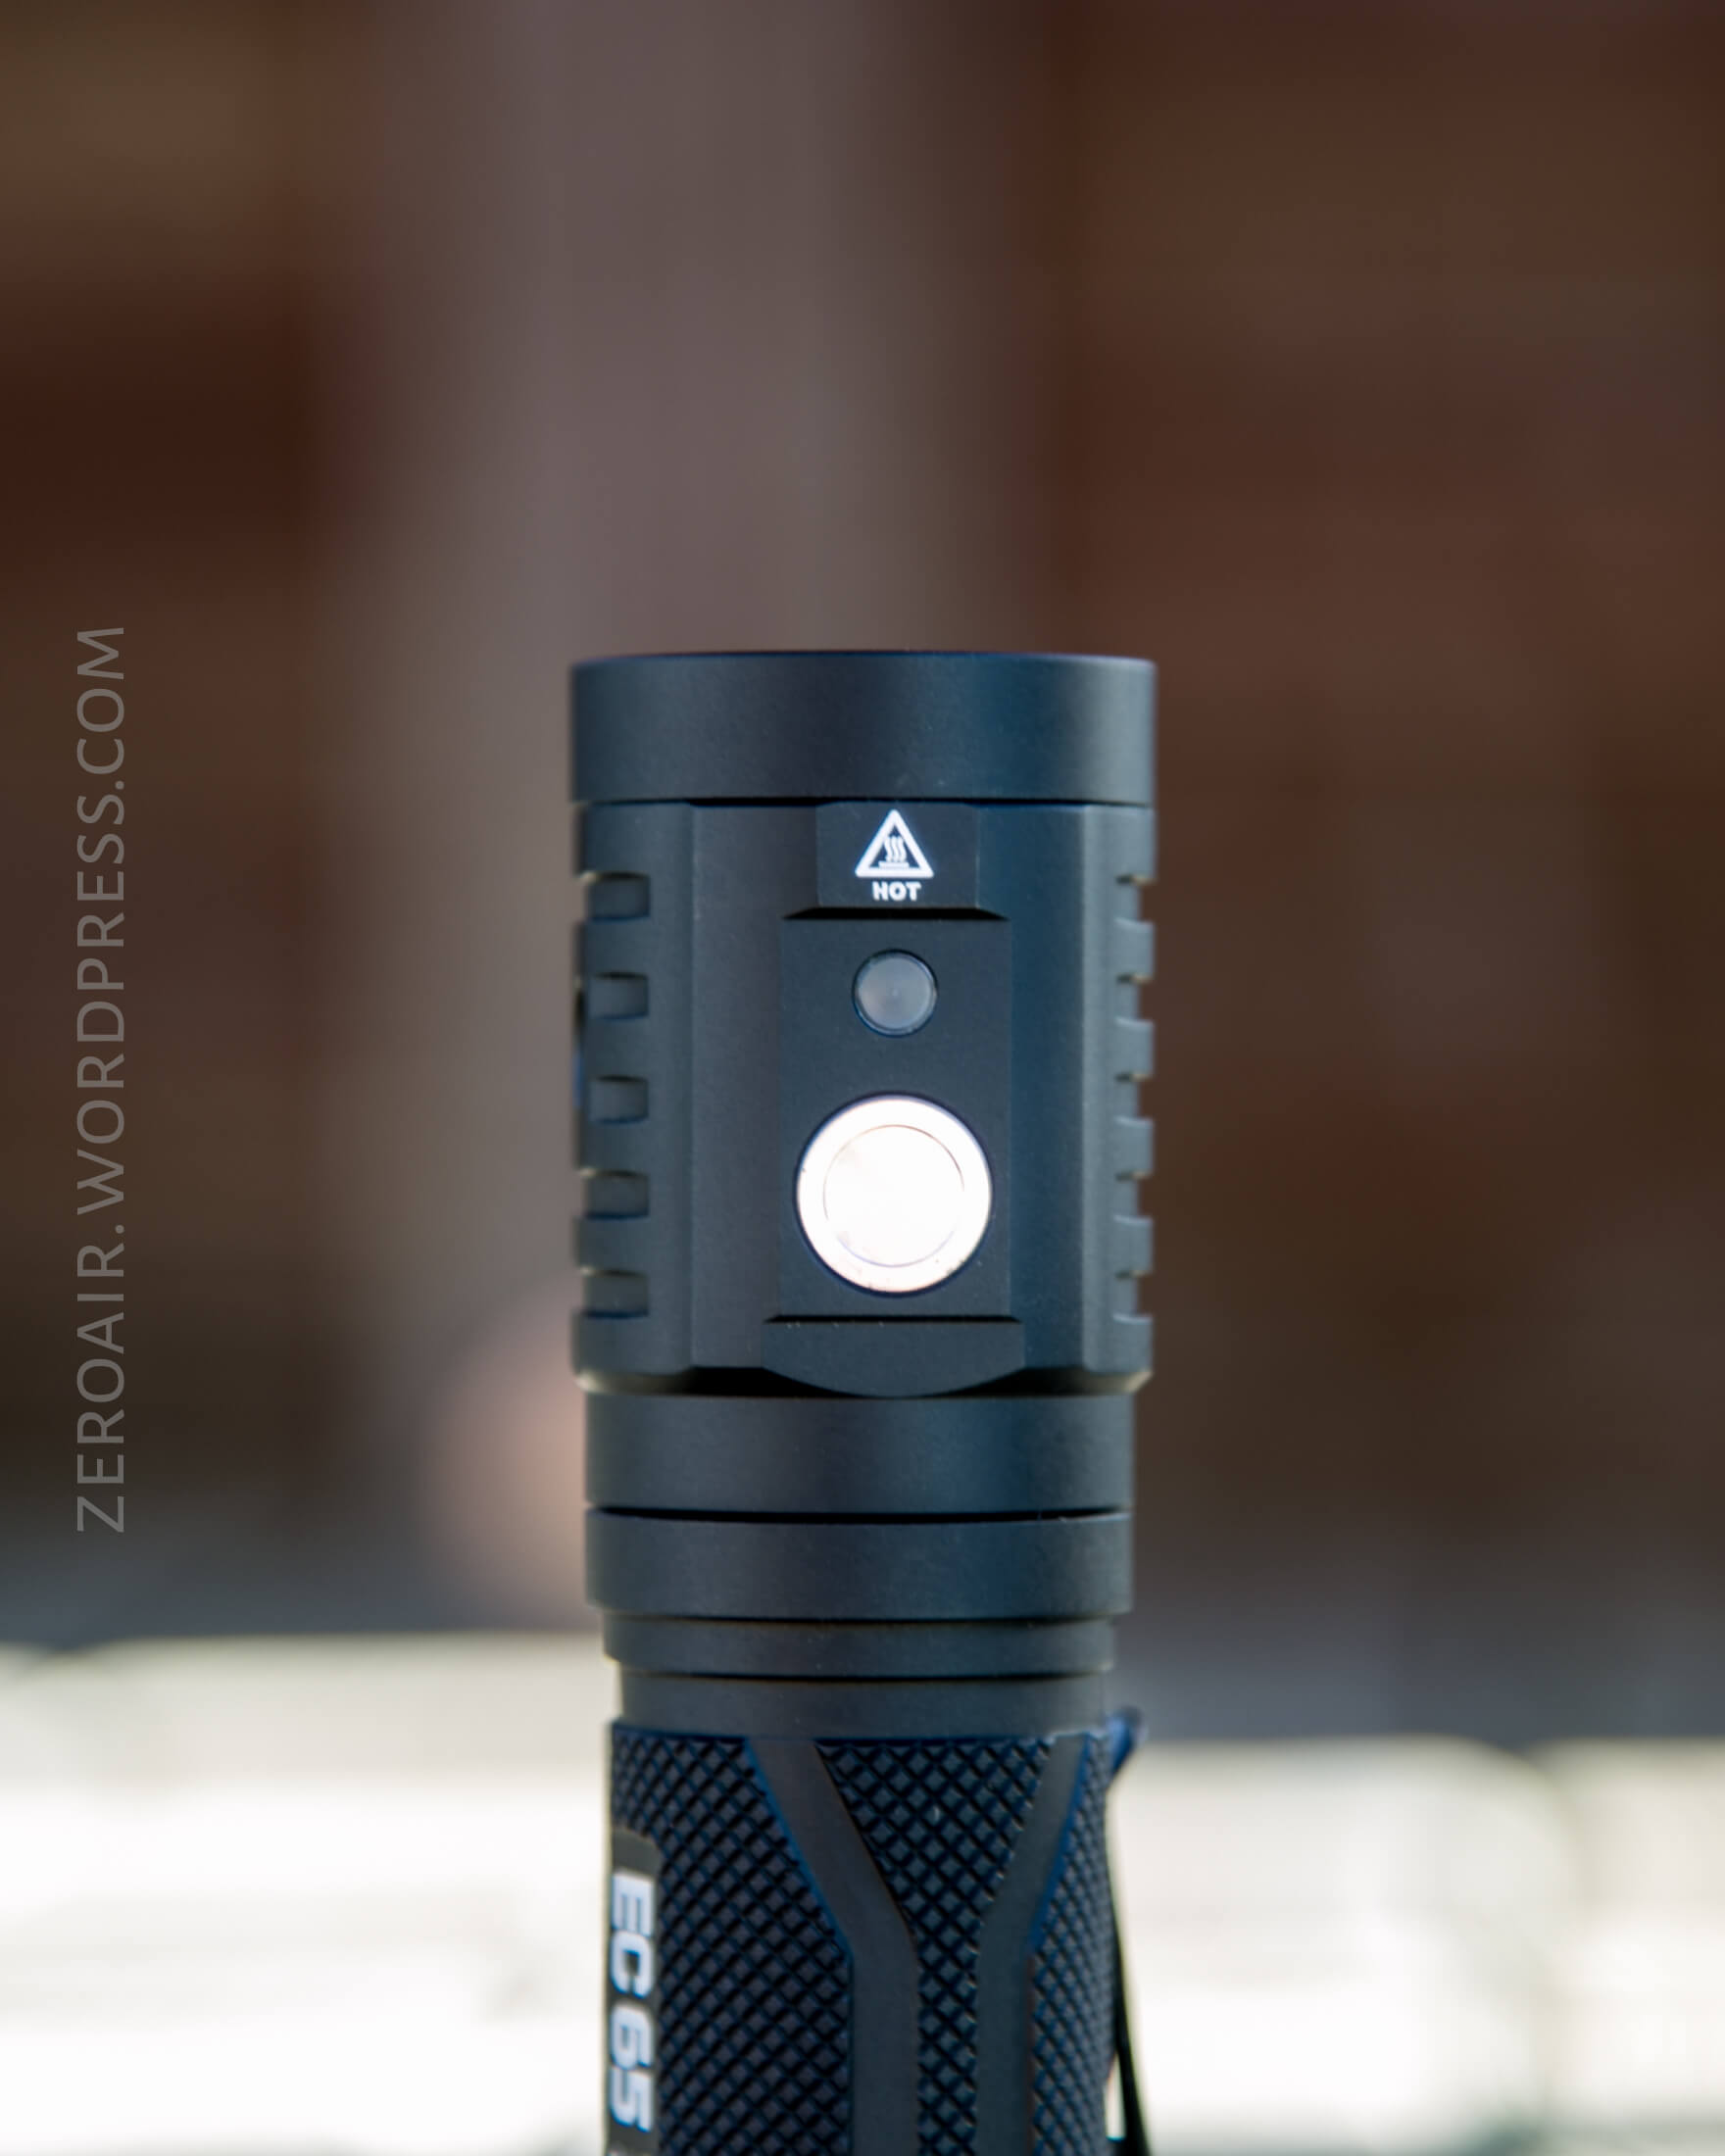 zeroair_reviews_acebeam_ec65_21700_nichia_27.jpg